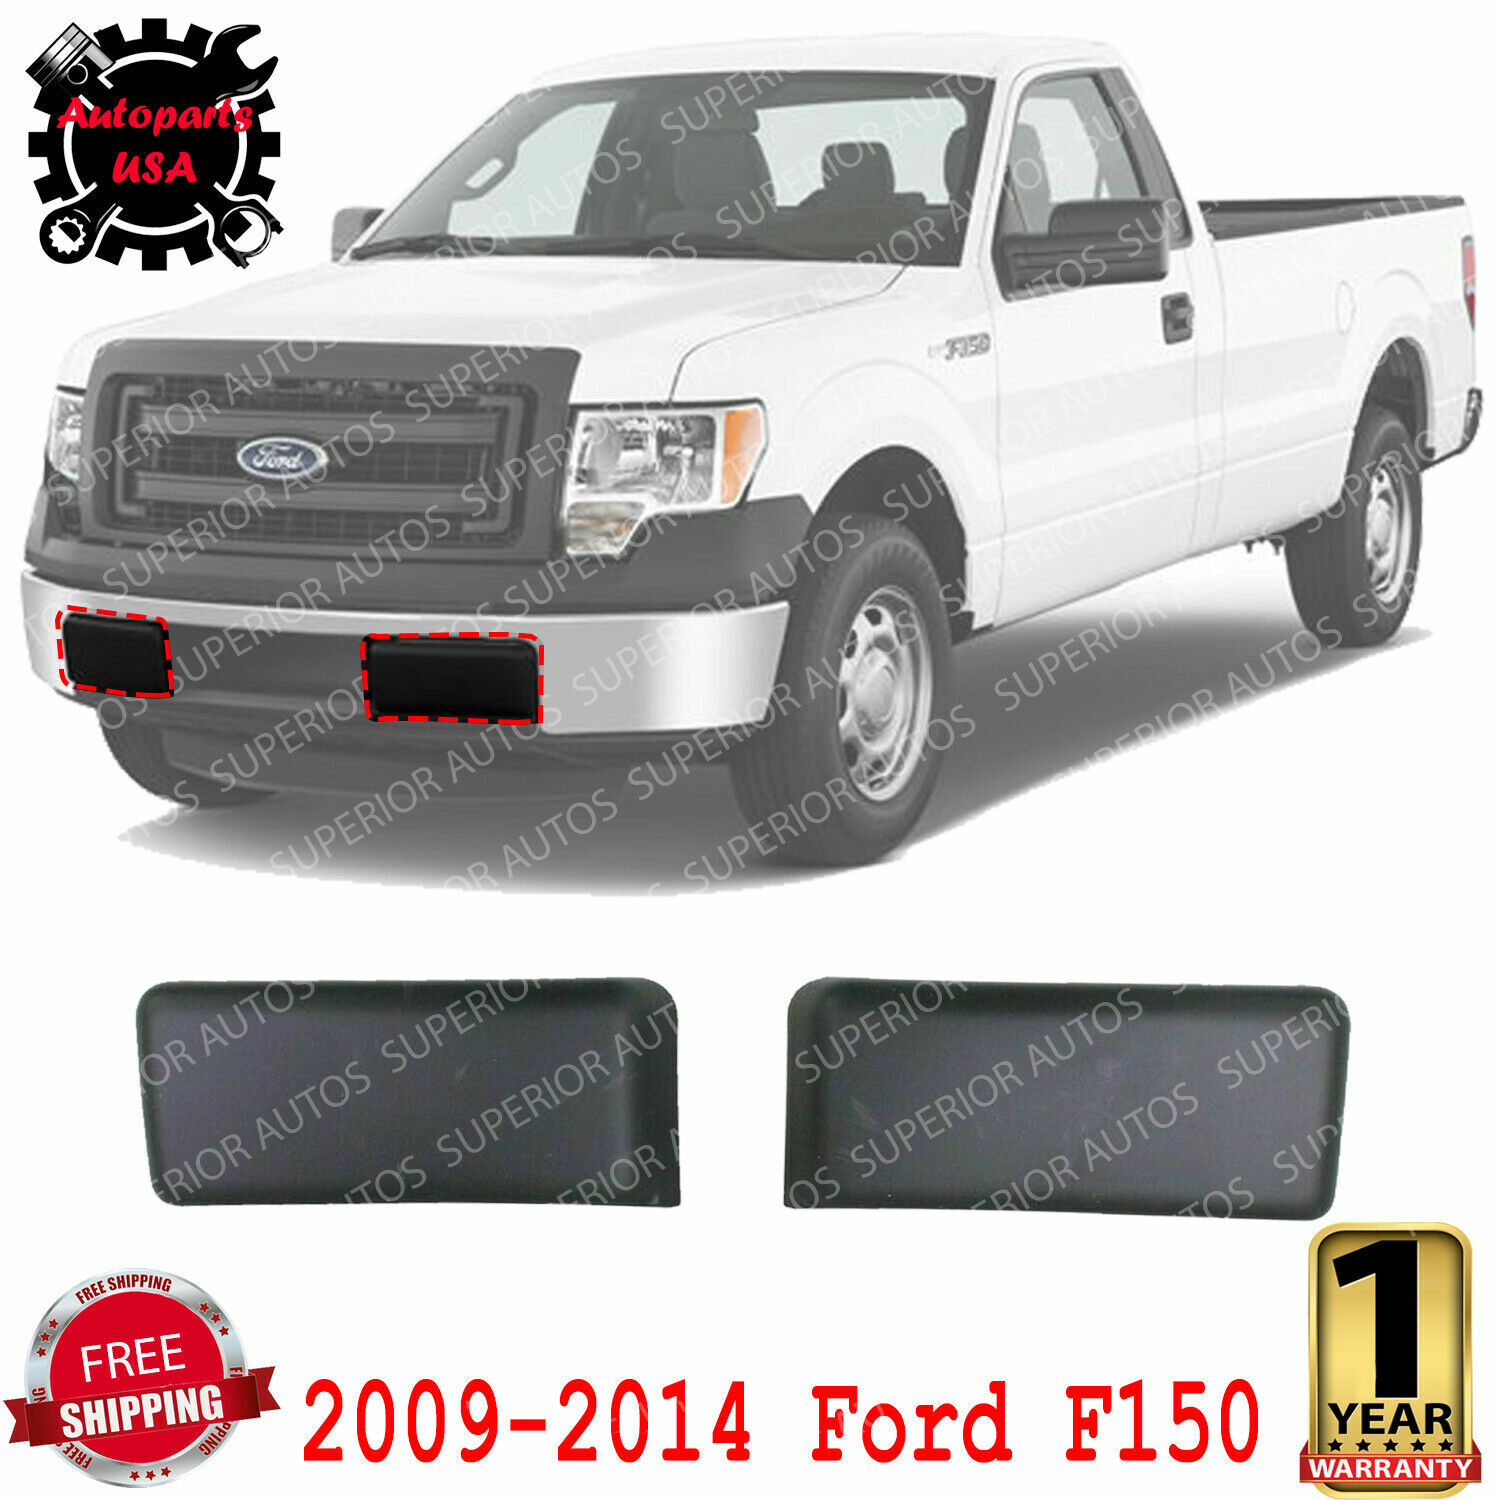 Plastic For F-150 09-14 Front LH=RH Side Bumper Guard Textured